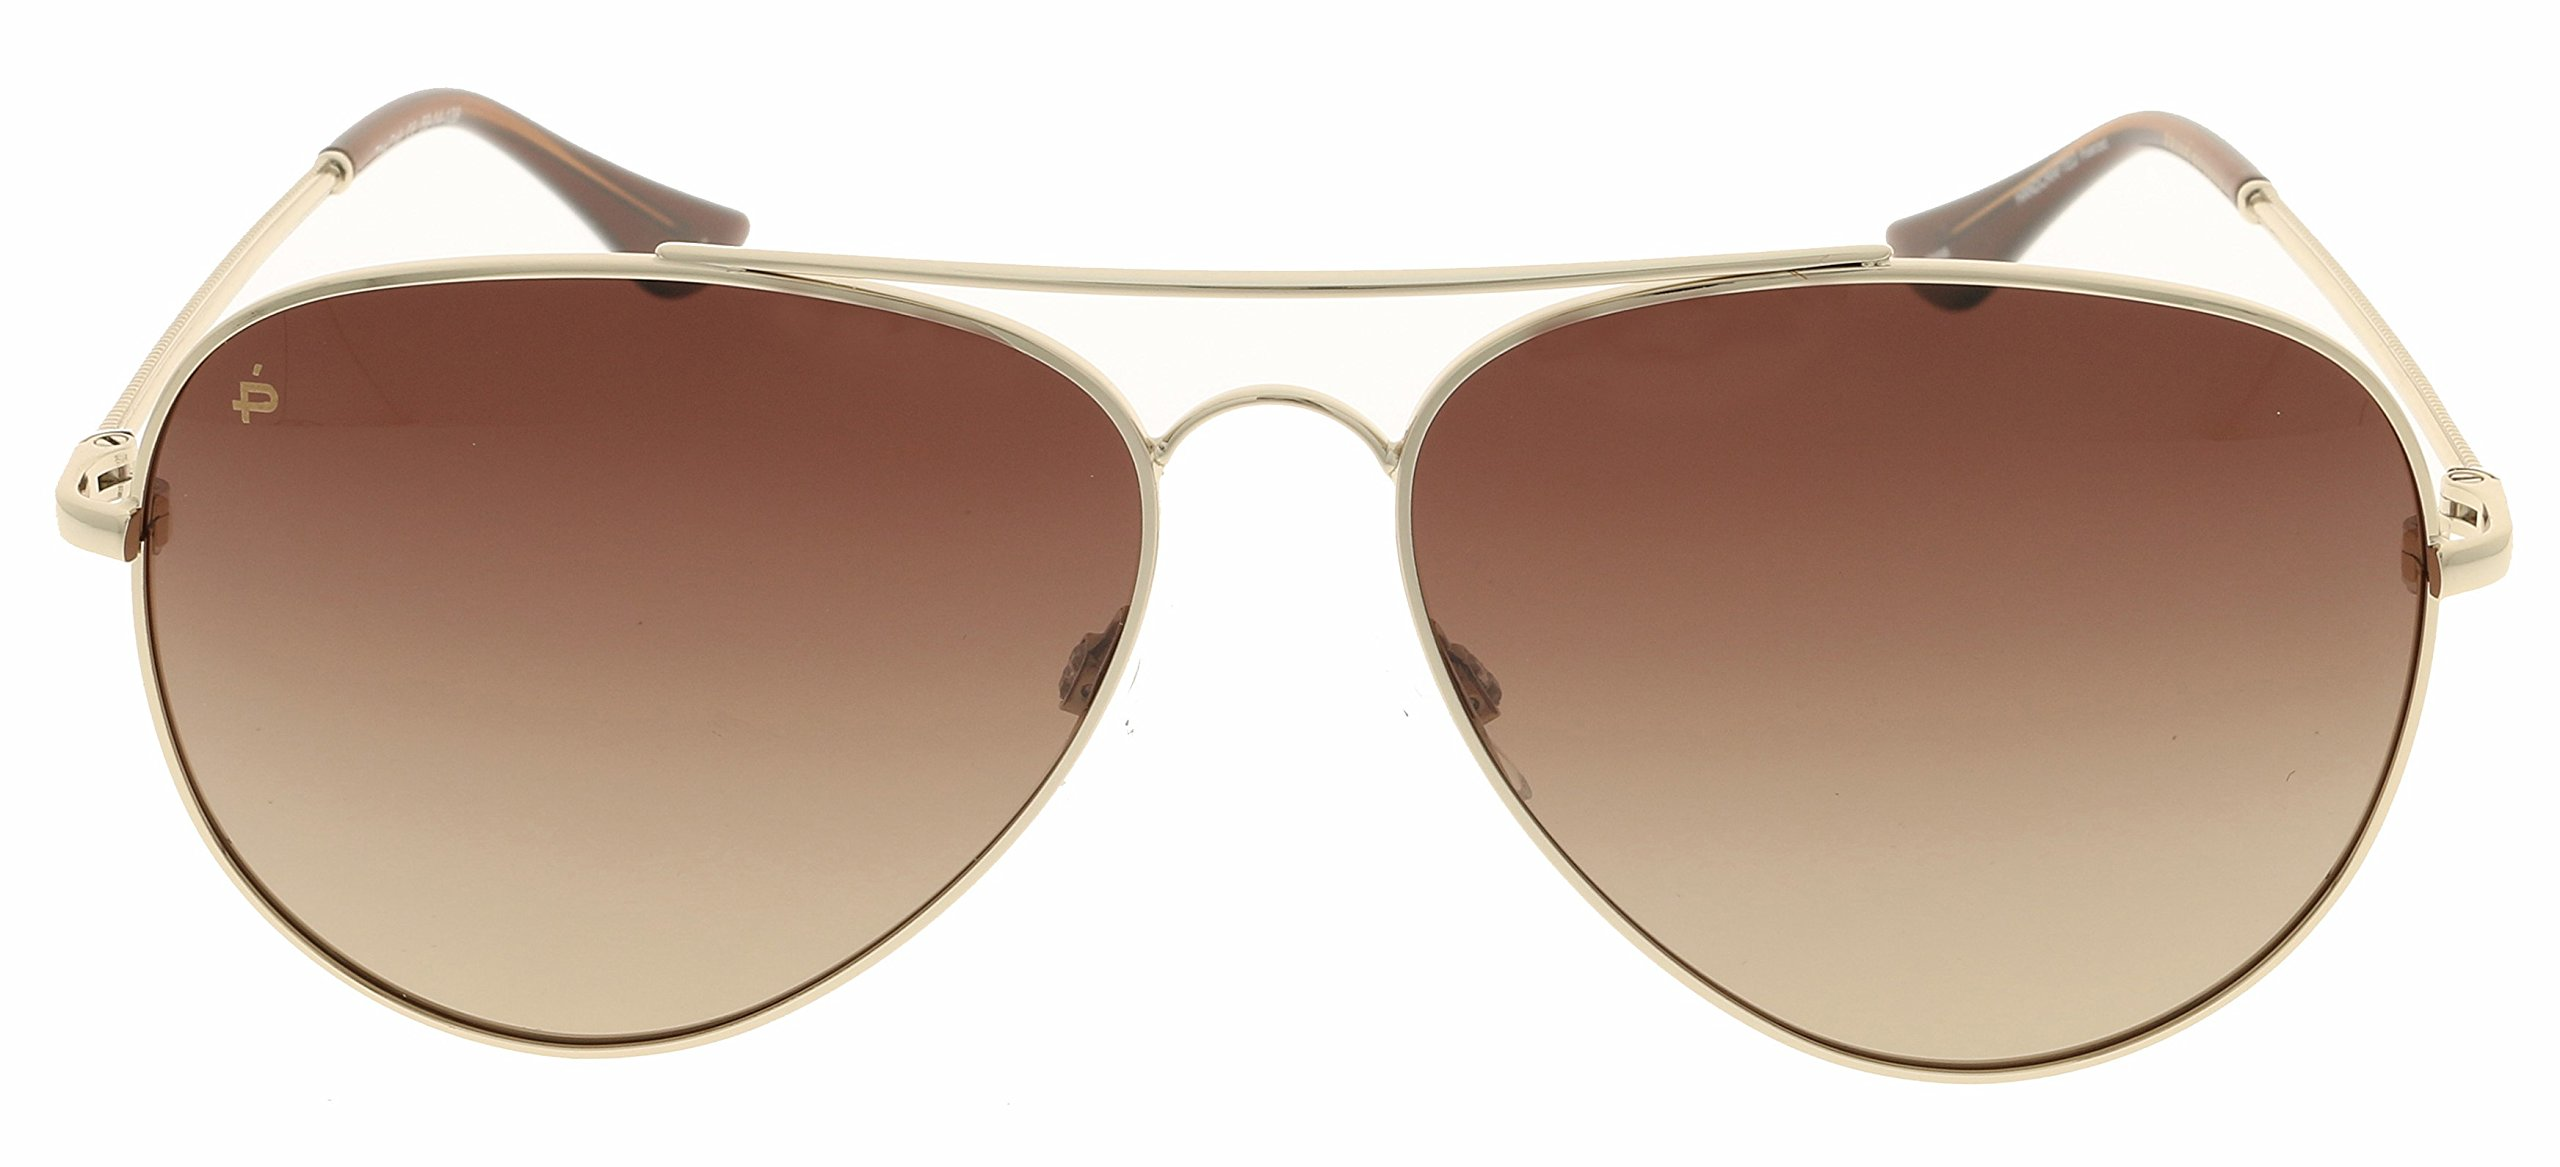 PRIVÉ REVAUX Places We Love Collection''The Cali'' Polarized Handcrafted Designer Aviator Sunglasses (Gold/Brown Gradient) by PRIVÉ REVAUX